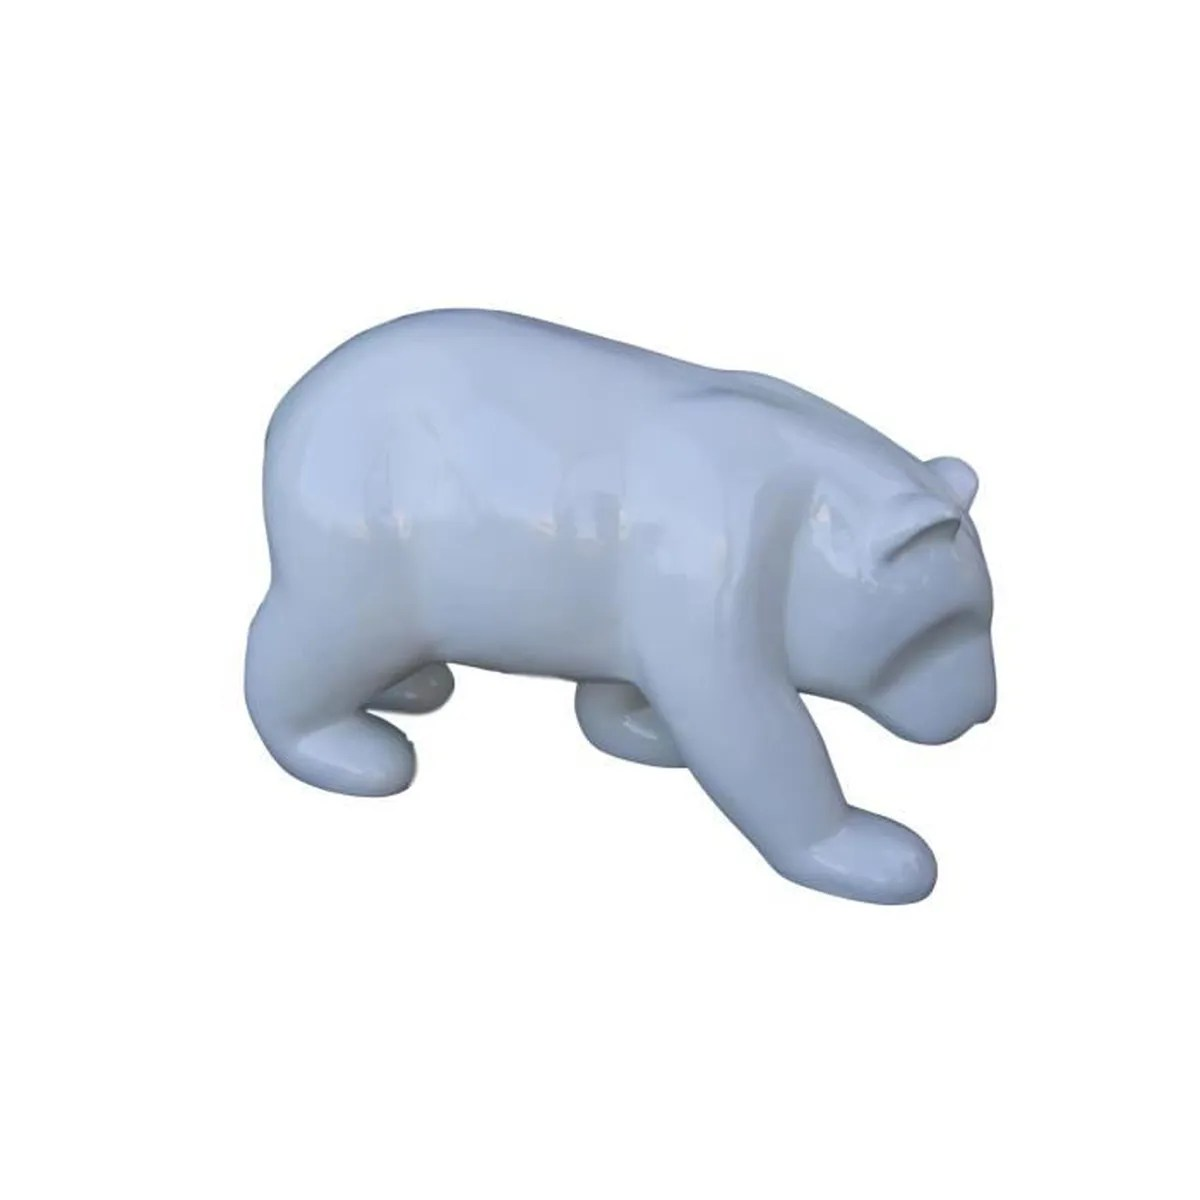 Decoration Chambre Ours Polaire Statue Sculpture Animal Decoration Resine Ours Polaire Design Blanc 80cm